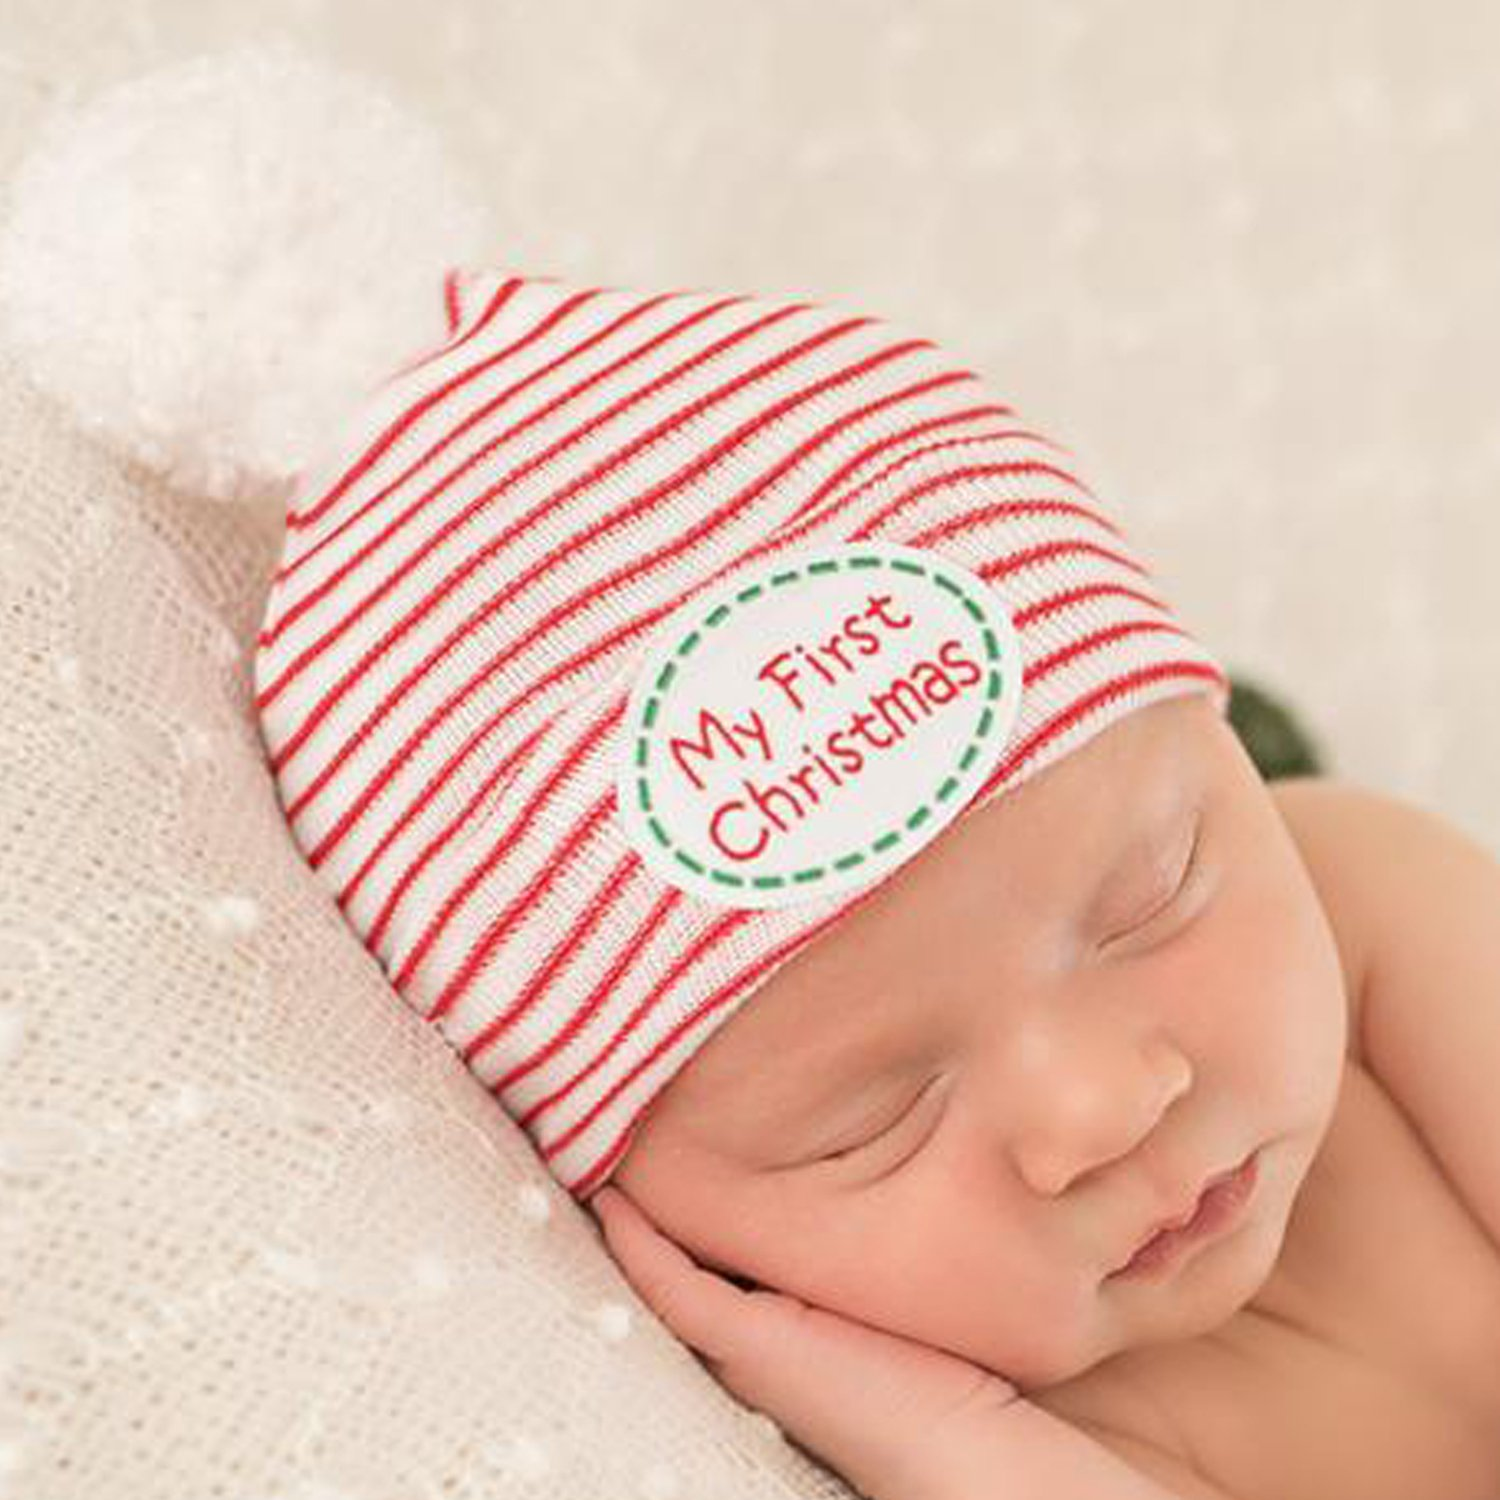 Baby's First Christmas Outfit | Newborn Christmas Photo Ideas | Baby Bling Street Baby Fashion Boutique